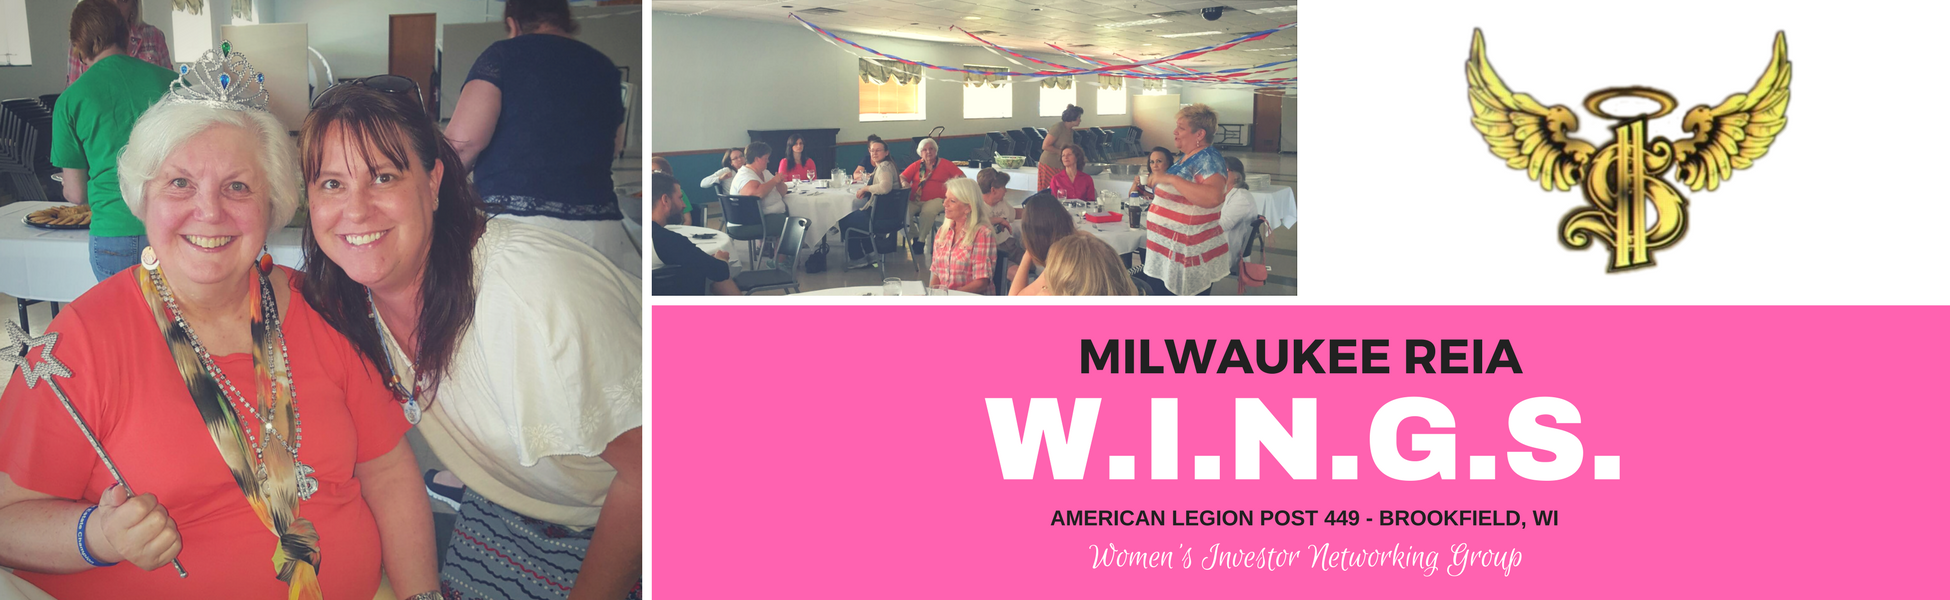 Milwaukee REIA | W.I.N.G.S. | Women's Investment Networking Group